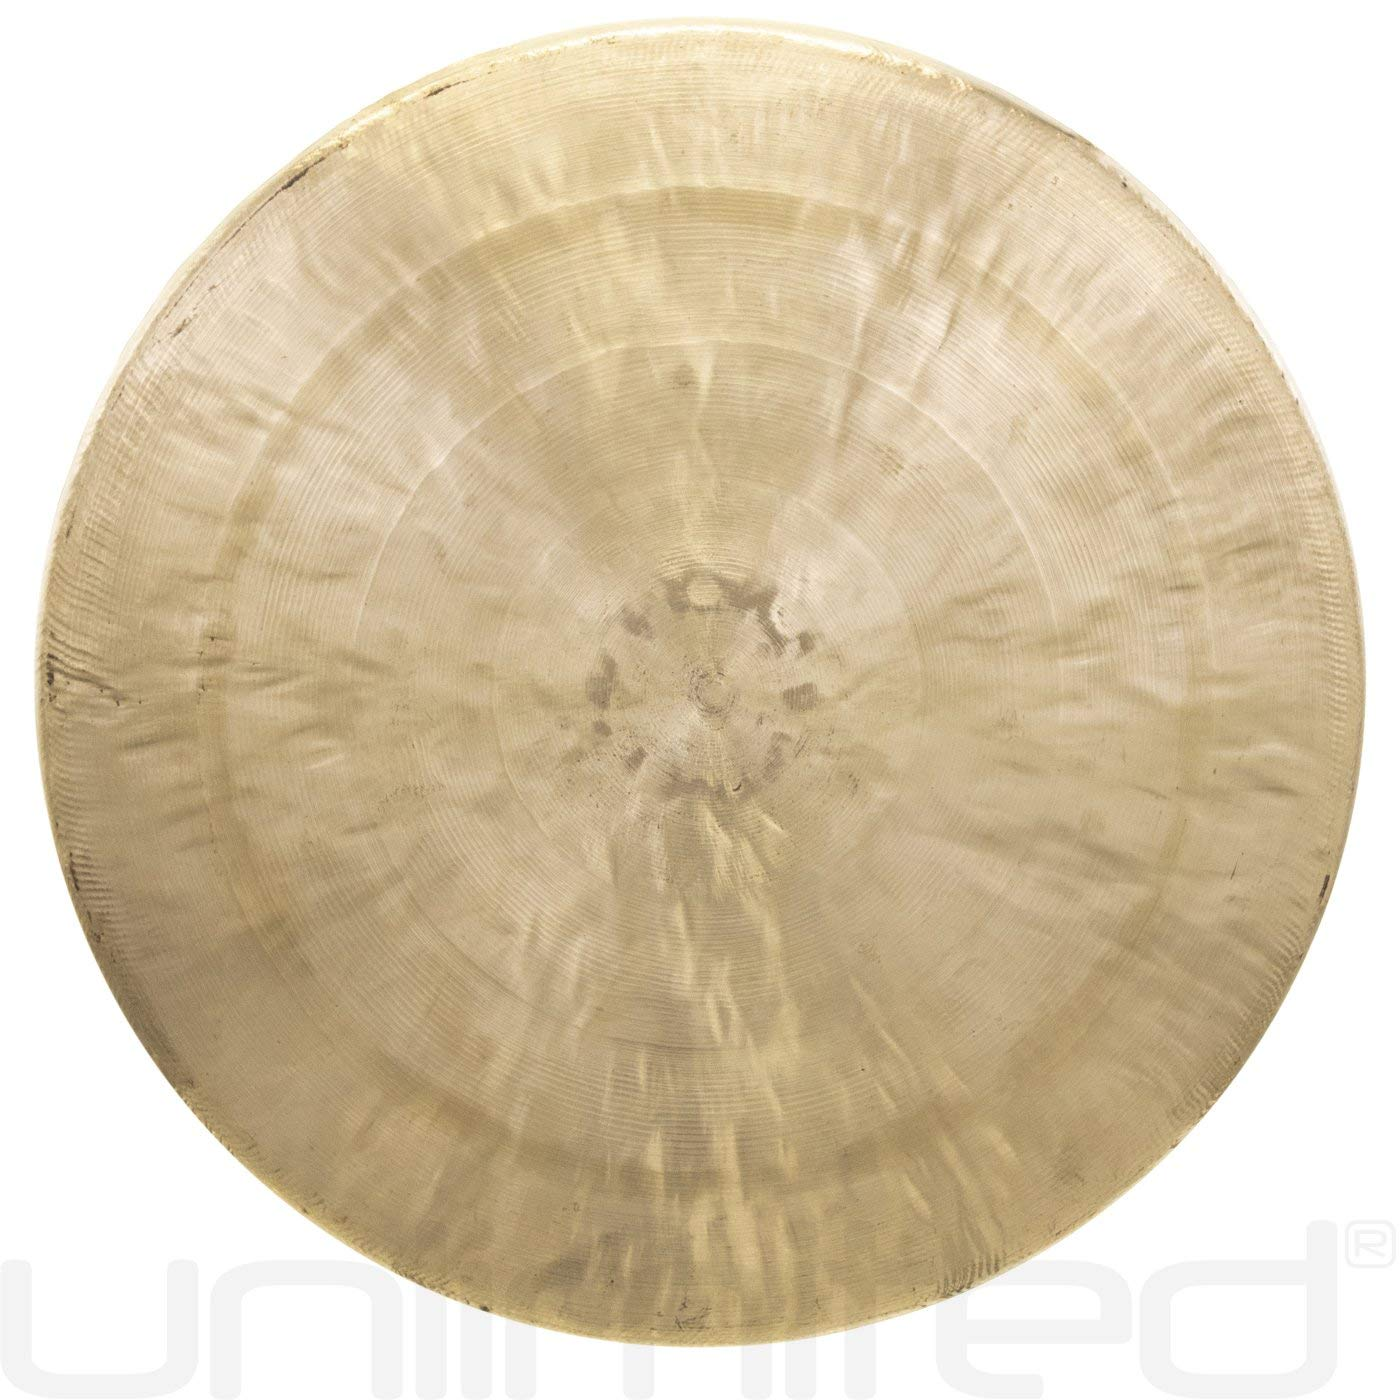 11'' Unlimited Night Gong by Unlimited